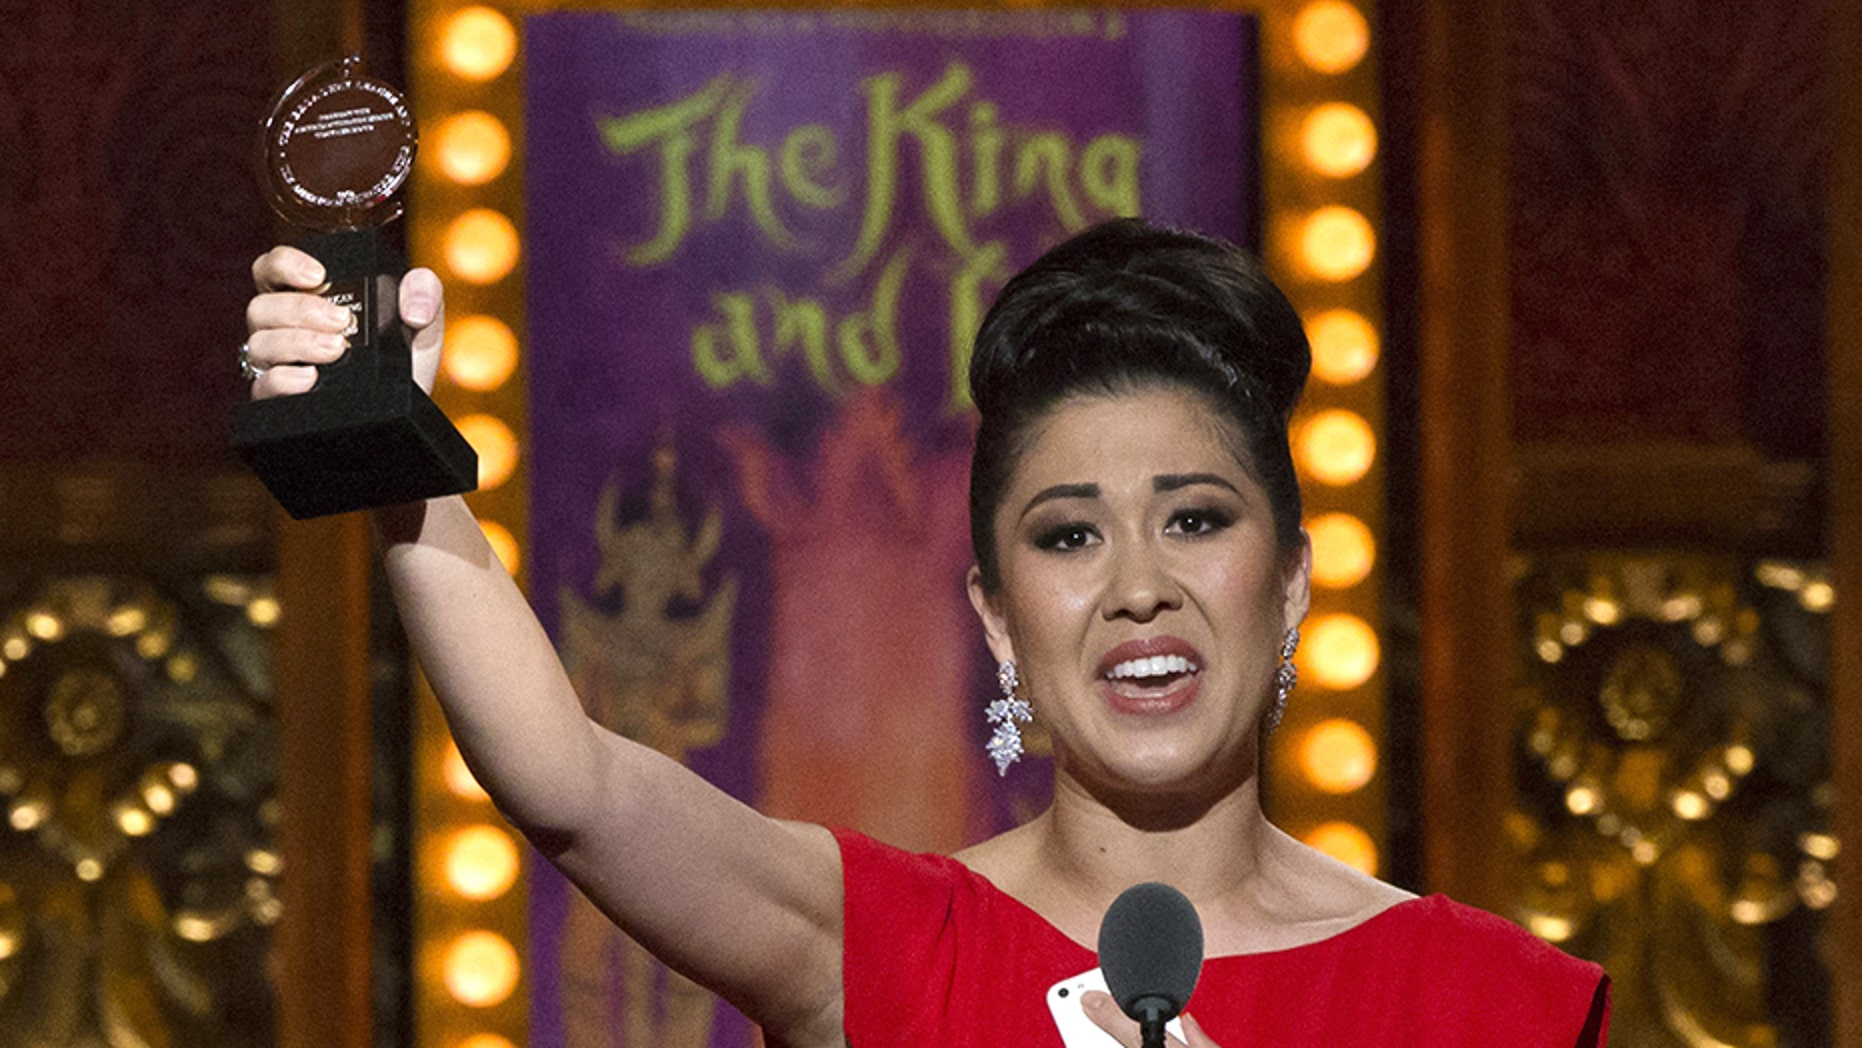 """Ruthie Ann Miles will return to the stage in the London production of the """"King and I,"""" for which she won the 2015 Tony Award, following the death of her daughter and unborn child."""